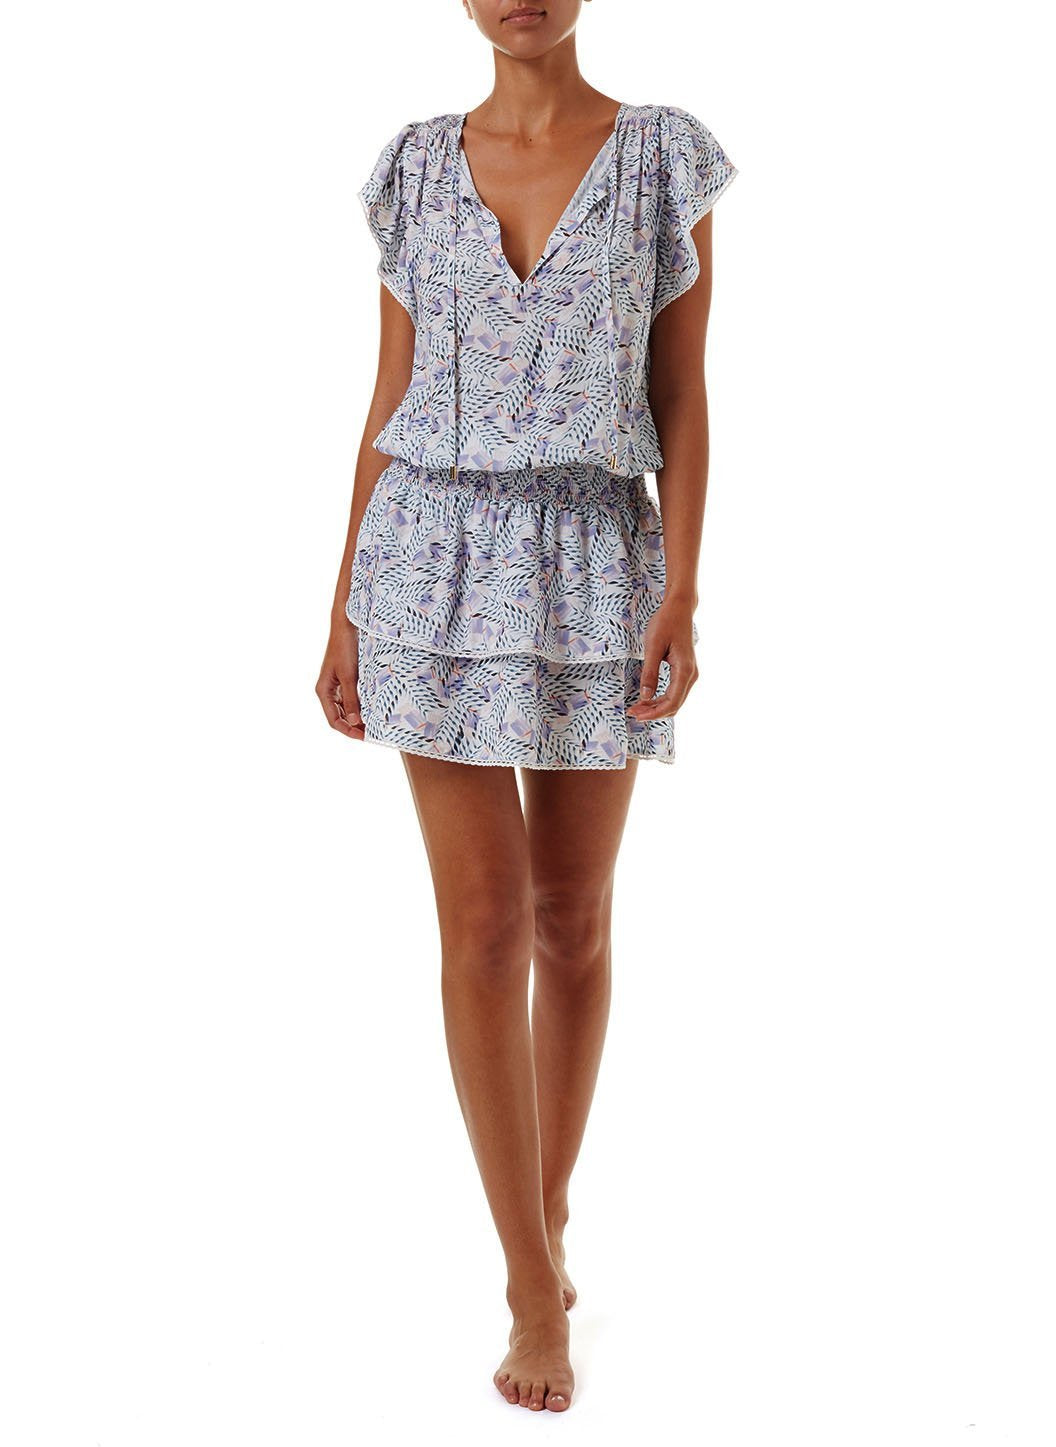 keri azari short frill beach dress 2019 F